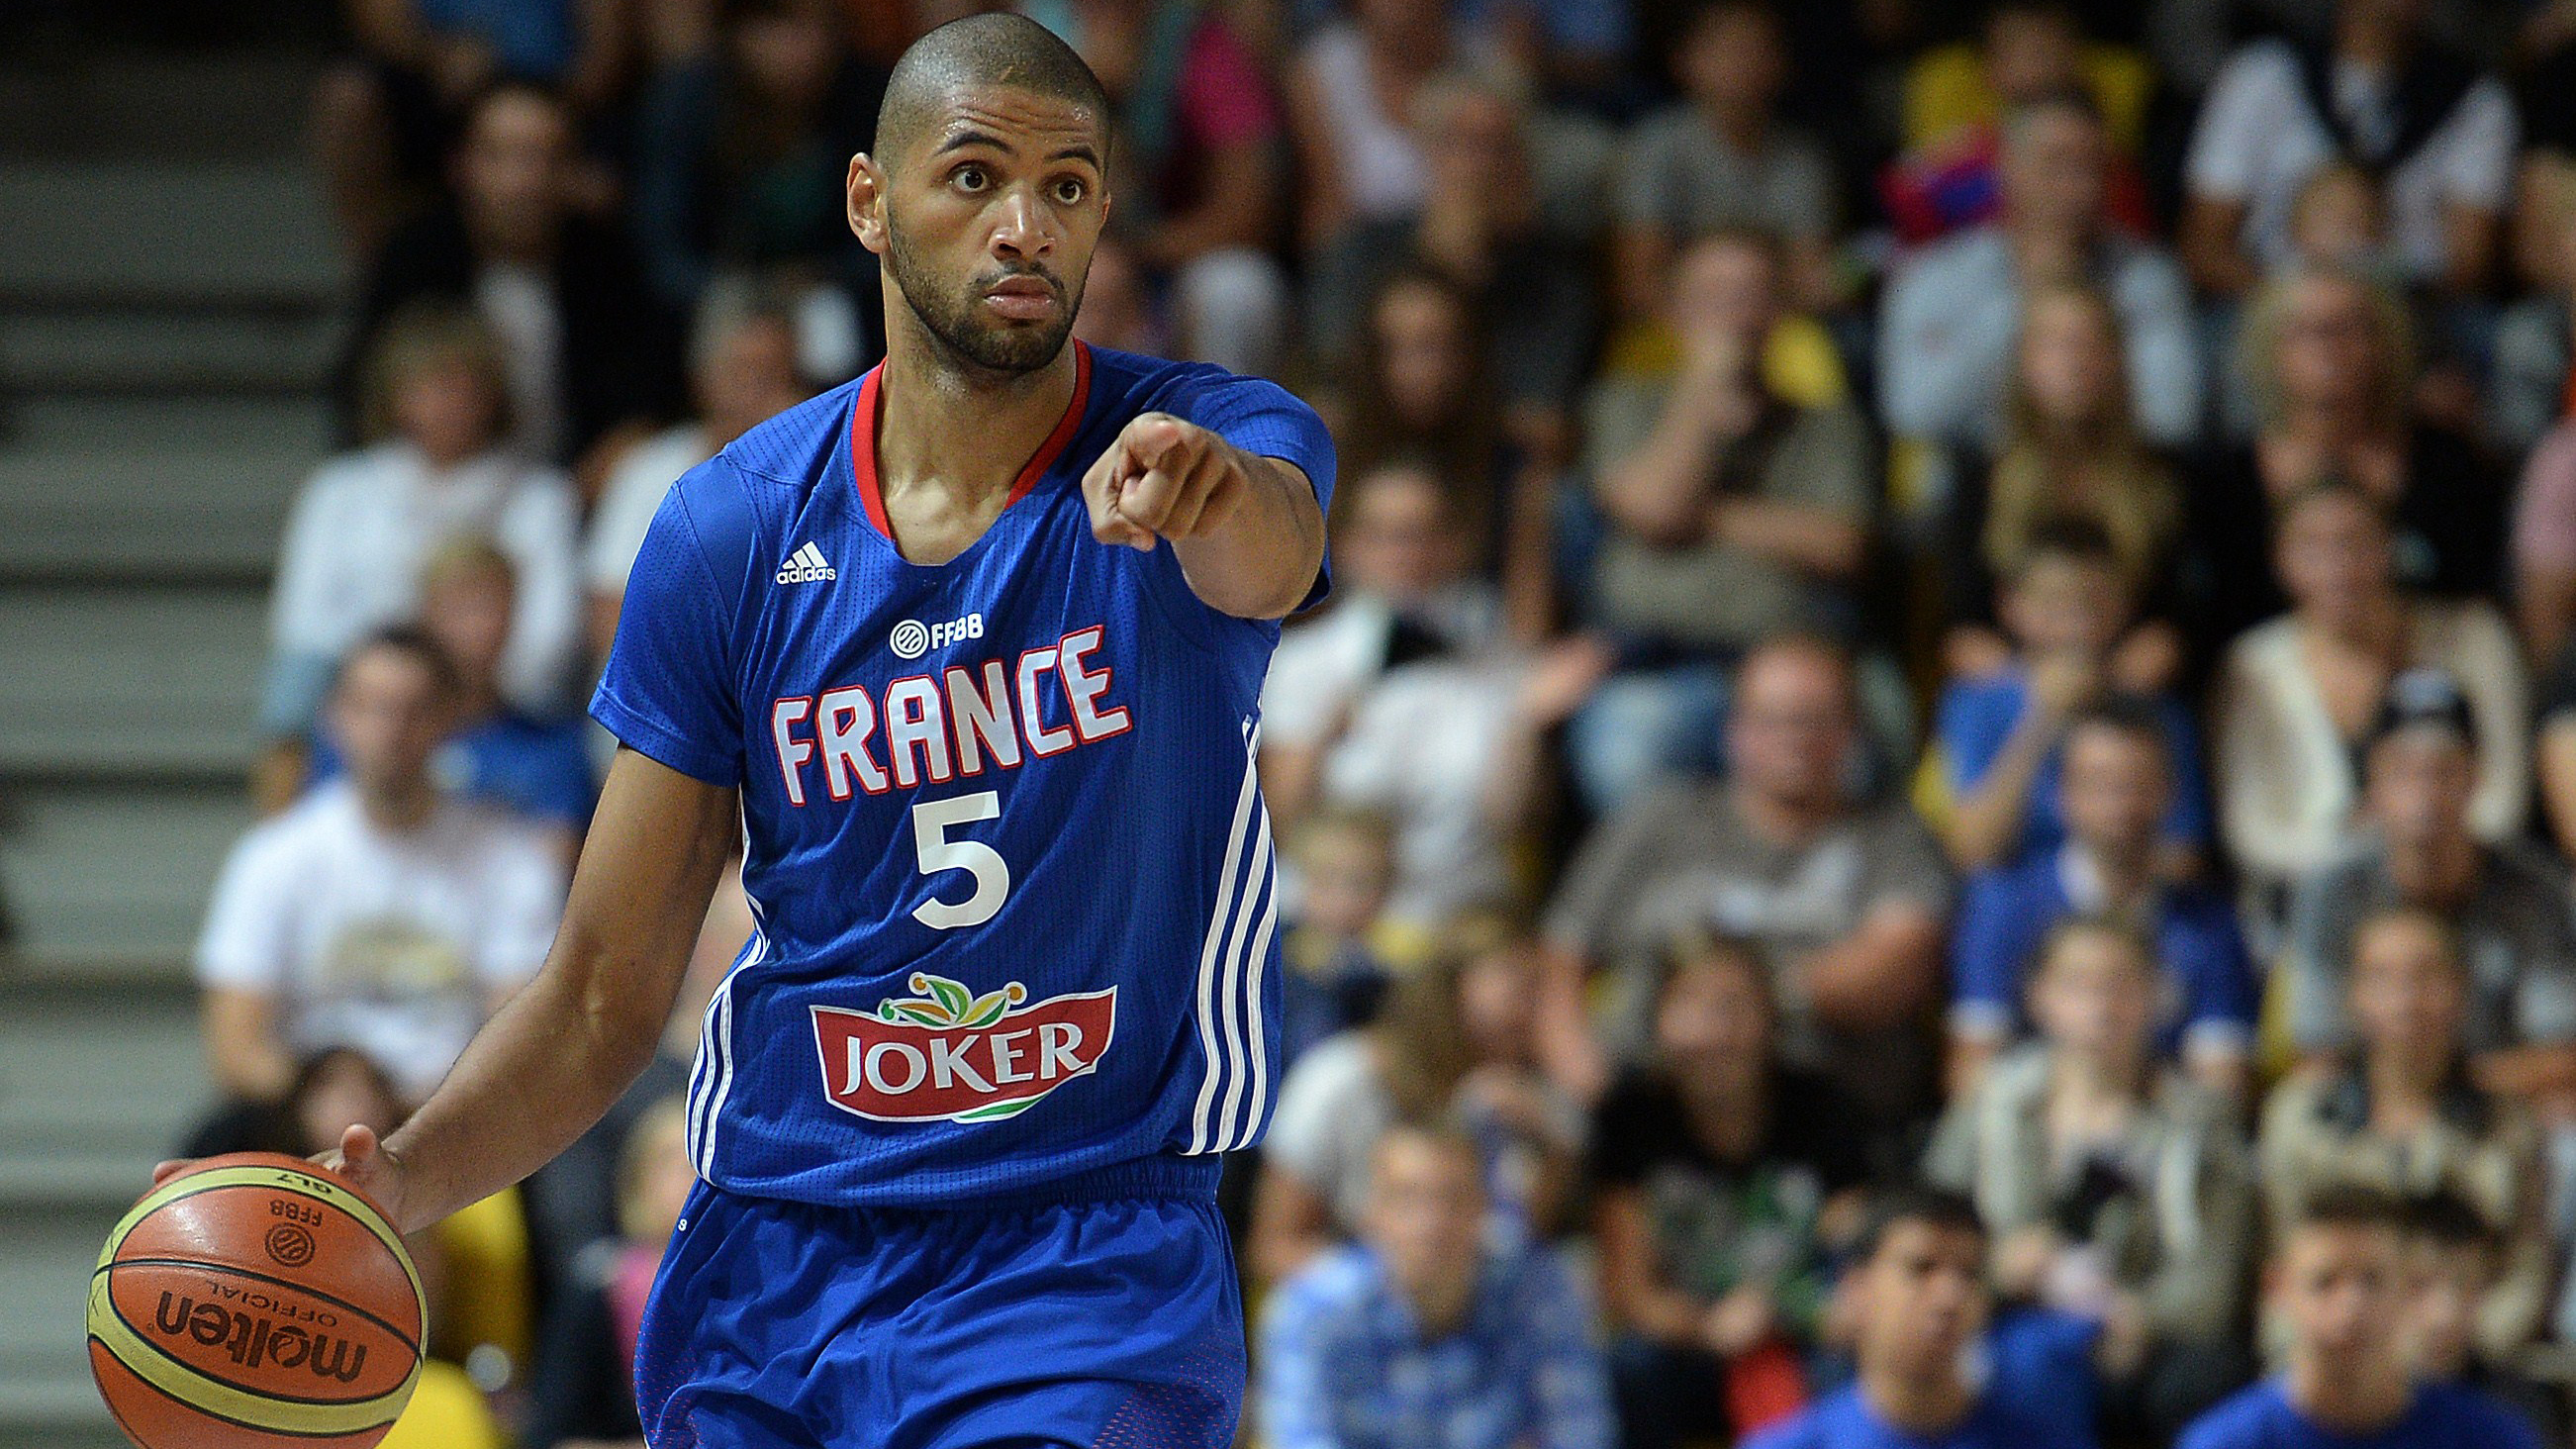 The Trail Blazers' Nicolas Batum is one of 50 active NBA players in the world cup.